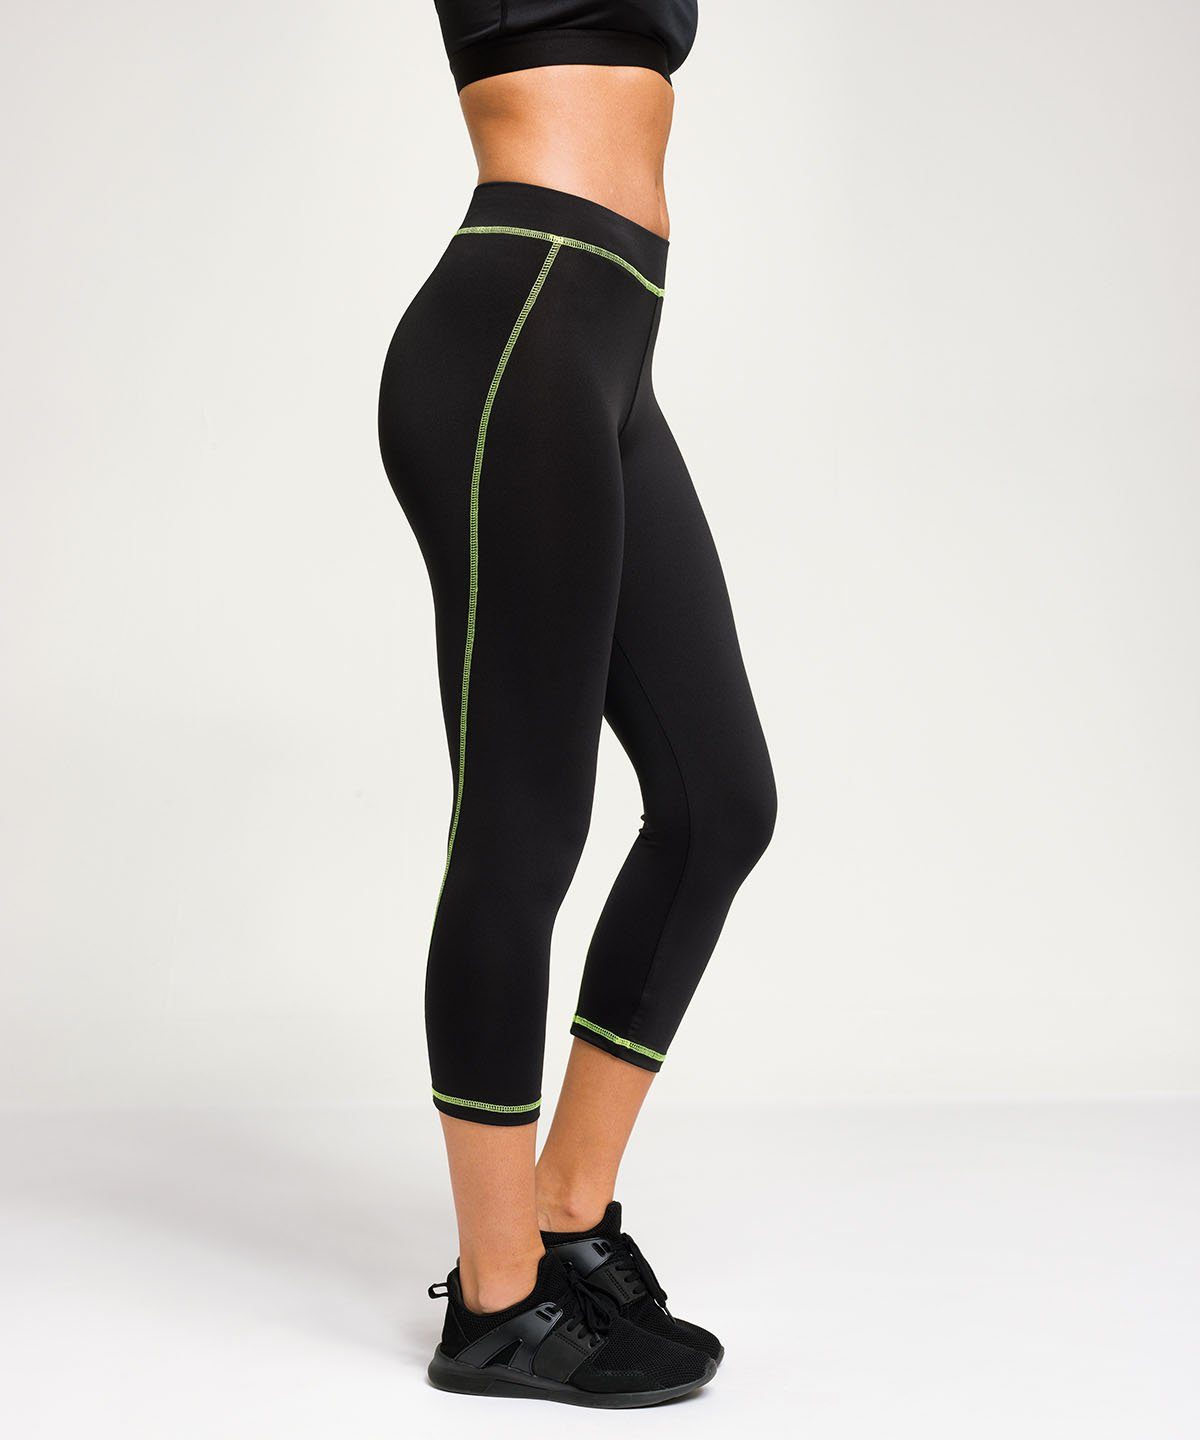 Capri Fitness Leggings Primate Activewear